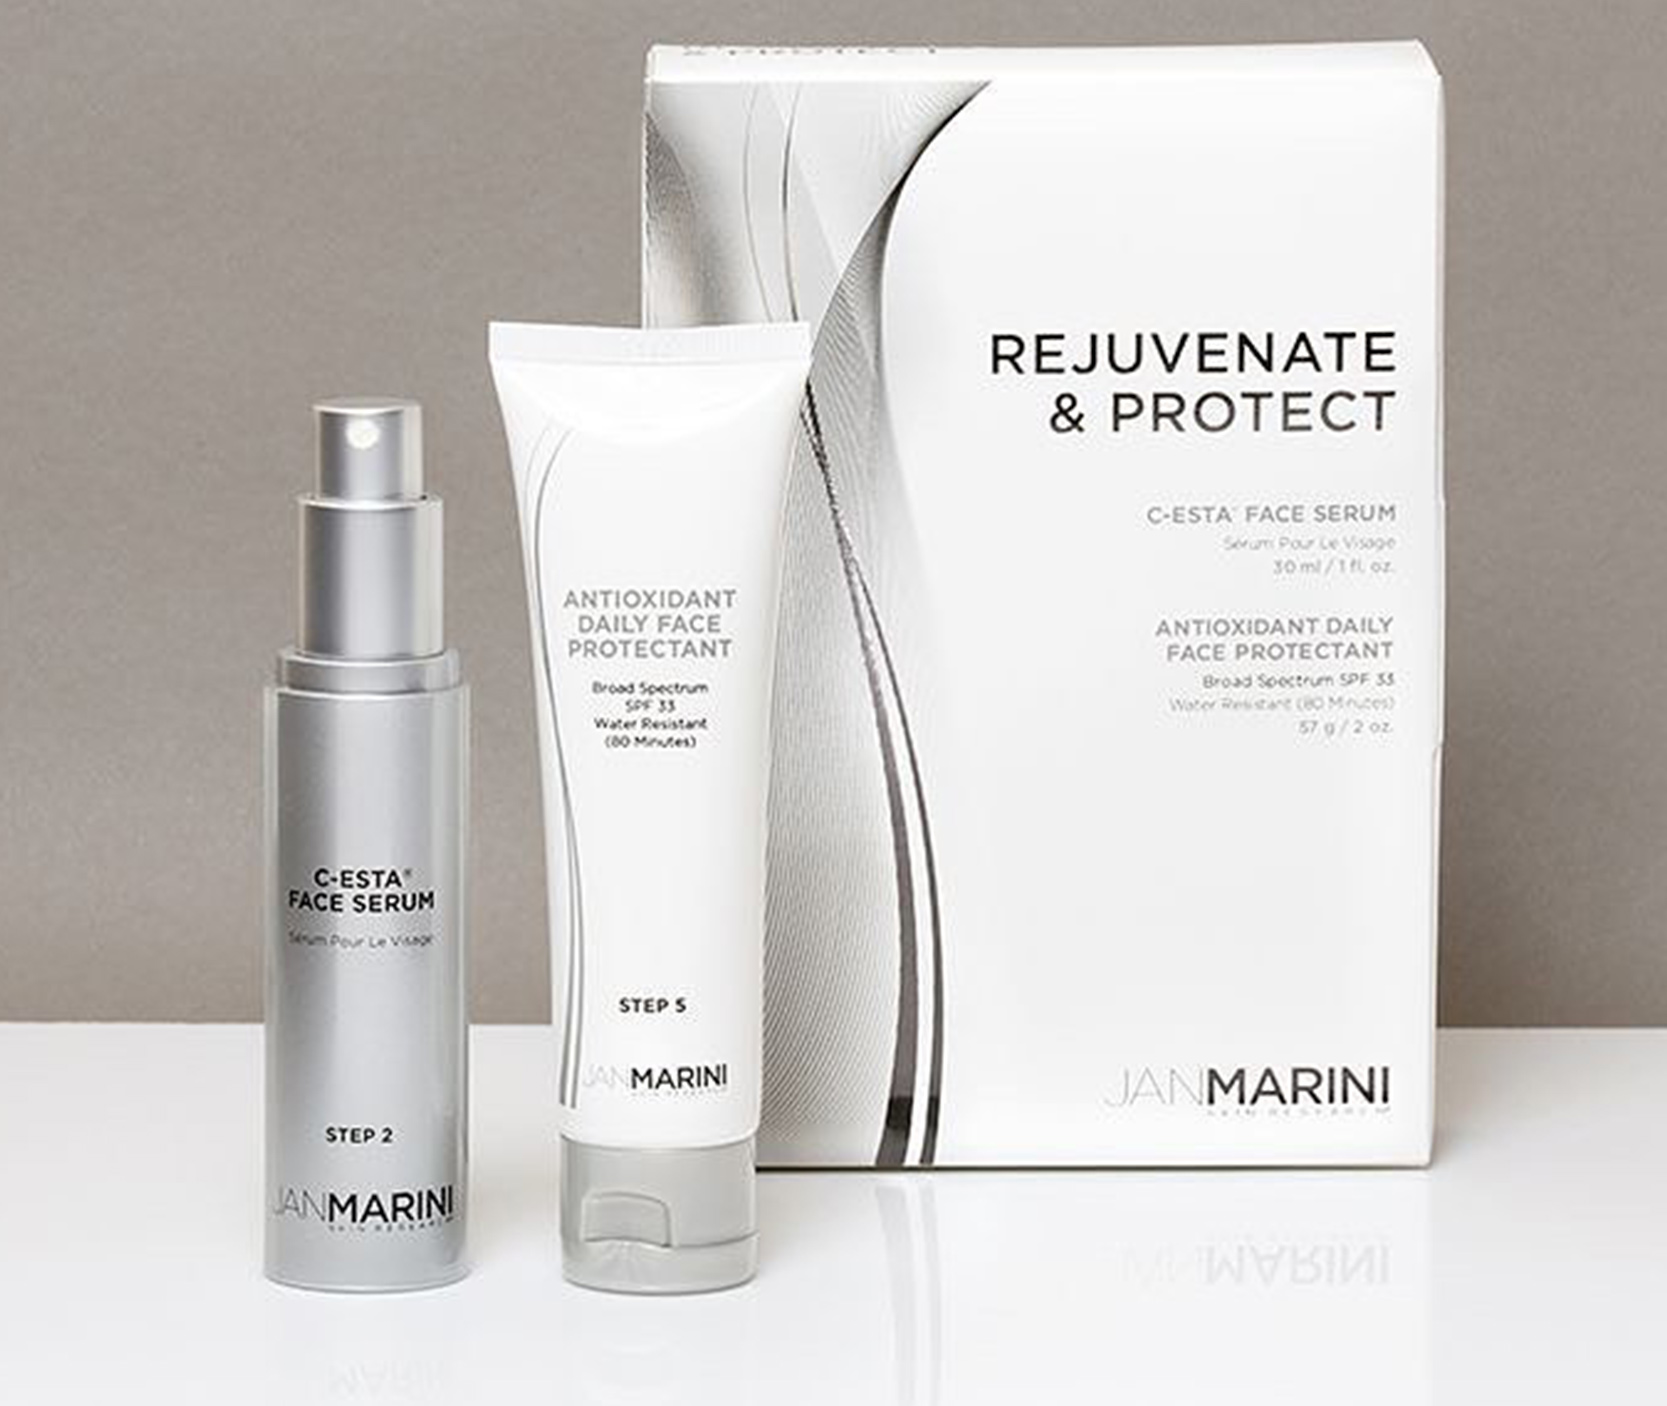 Jan Marini: Rejuvenate & Protect